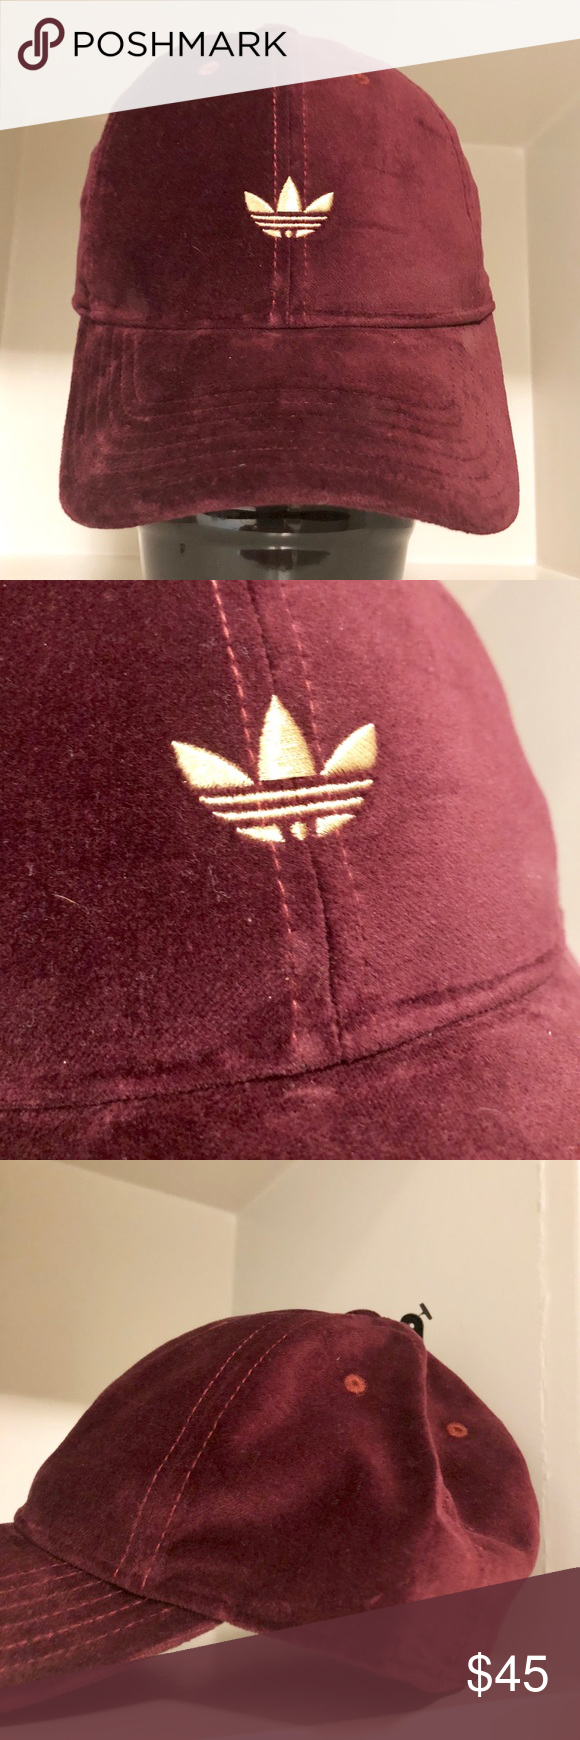 d1181bf05dc •RARE• Adidas VELVET Hat This hat is so cute.... even better in person!  Burgundy velvet with Gold logo. Adjustable Strap adidas Accessories Hats